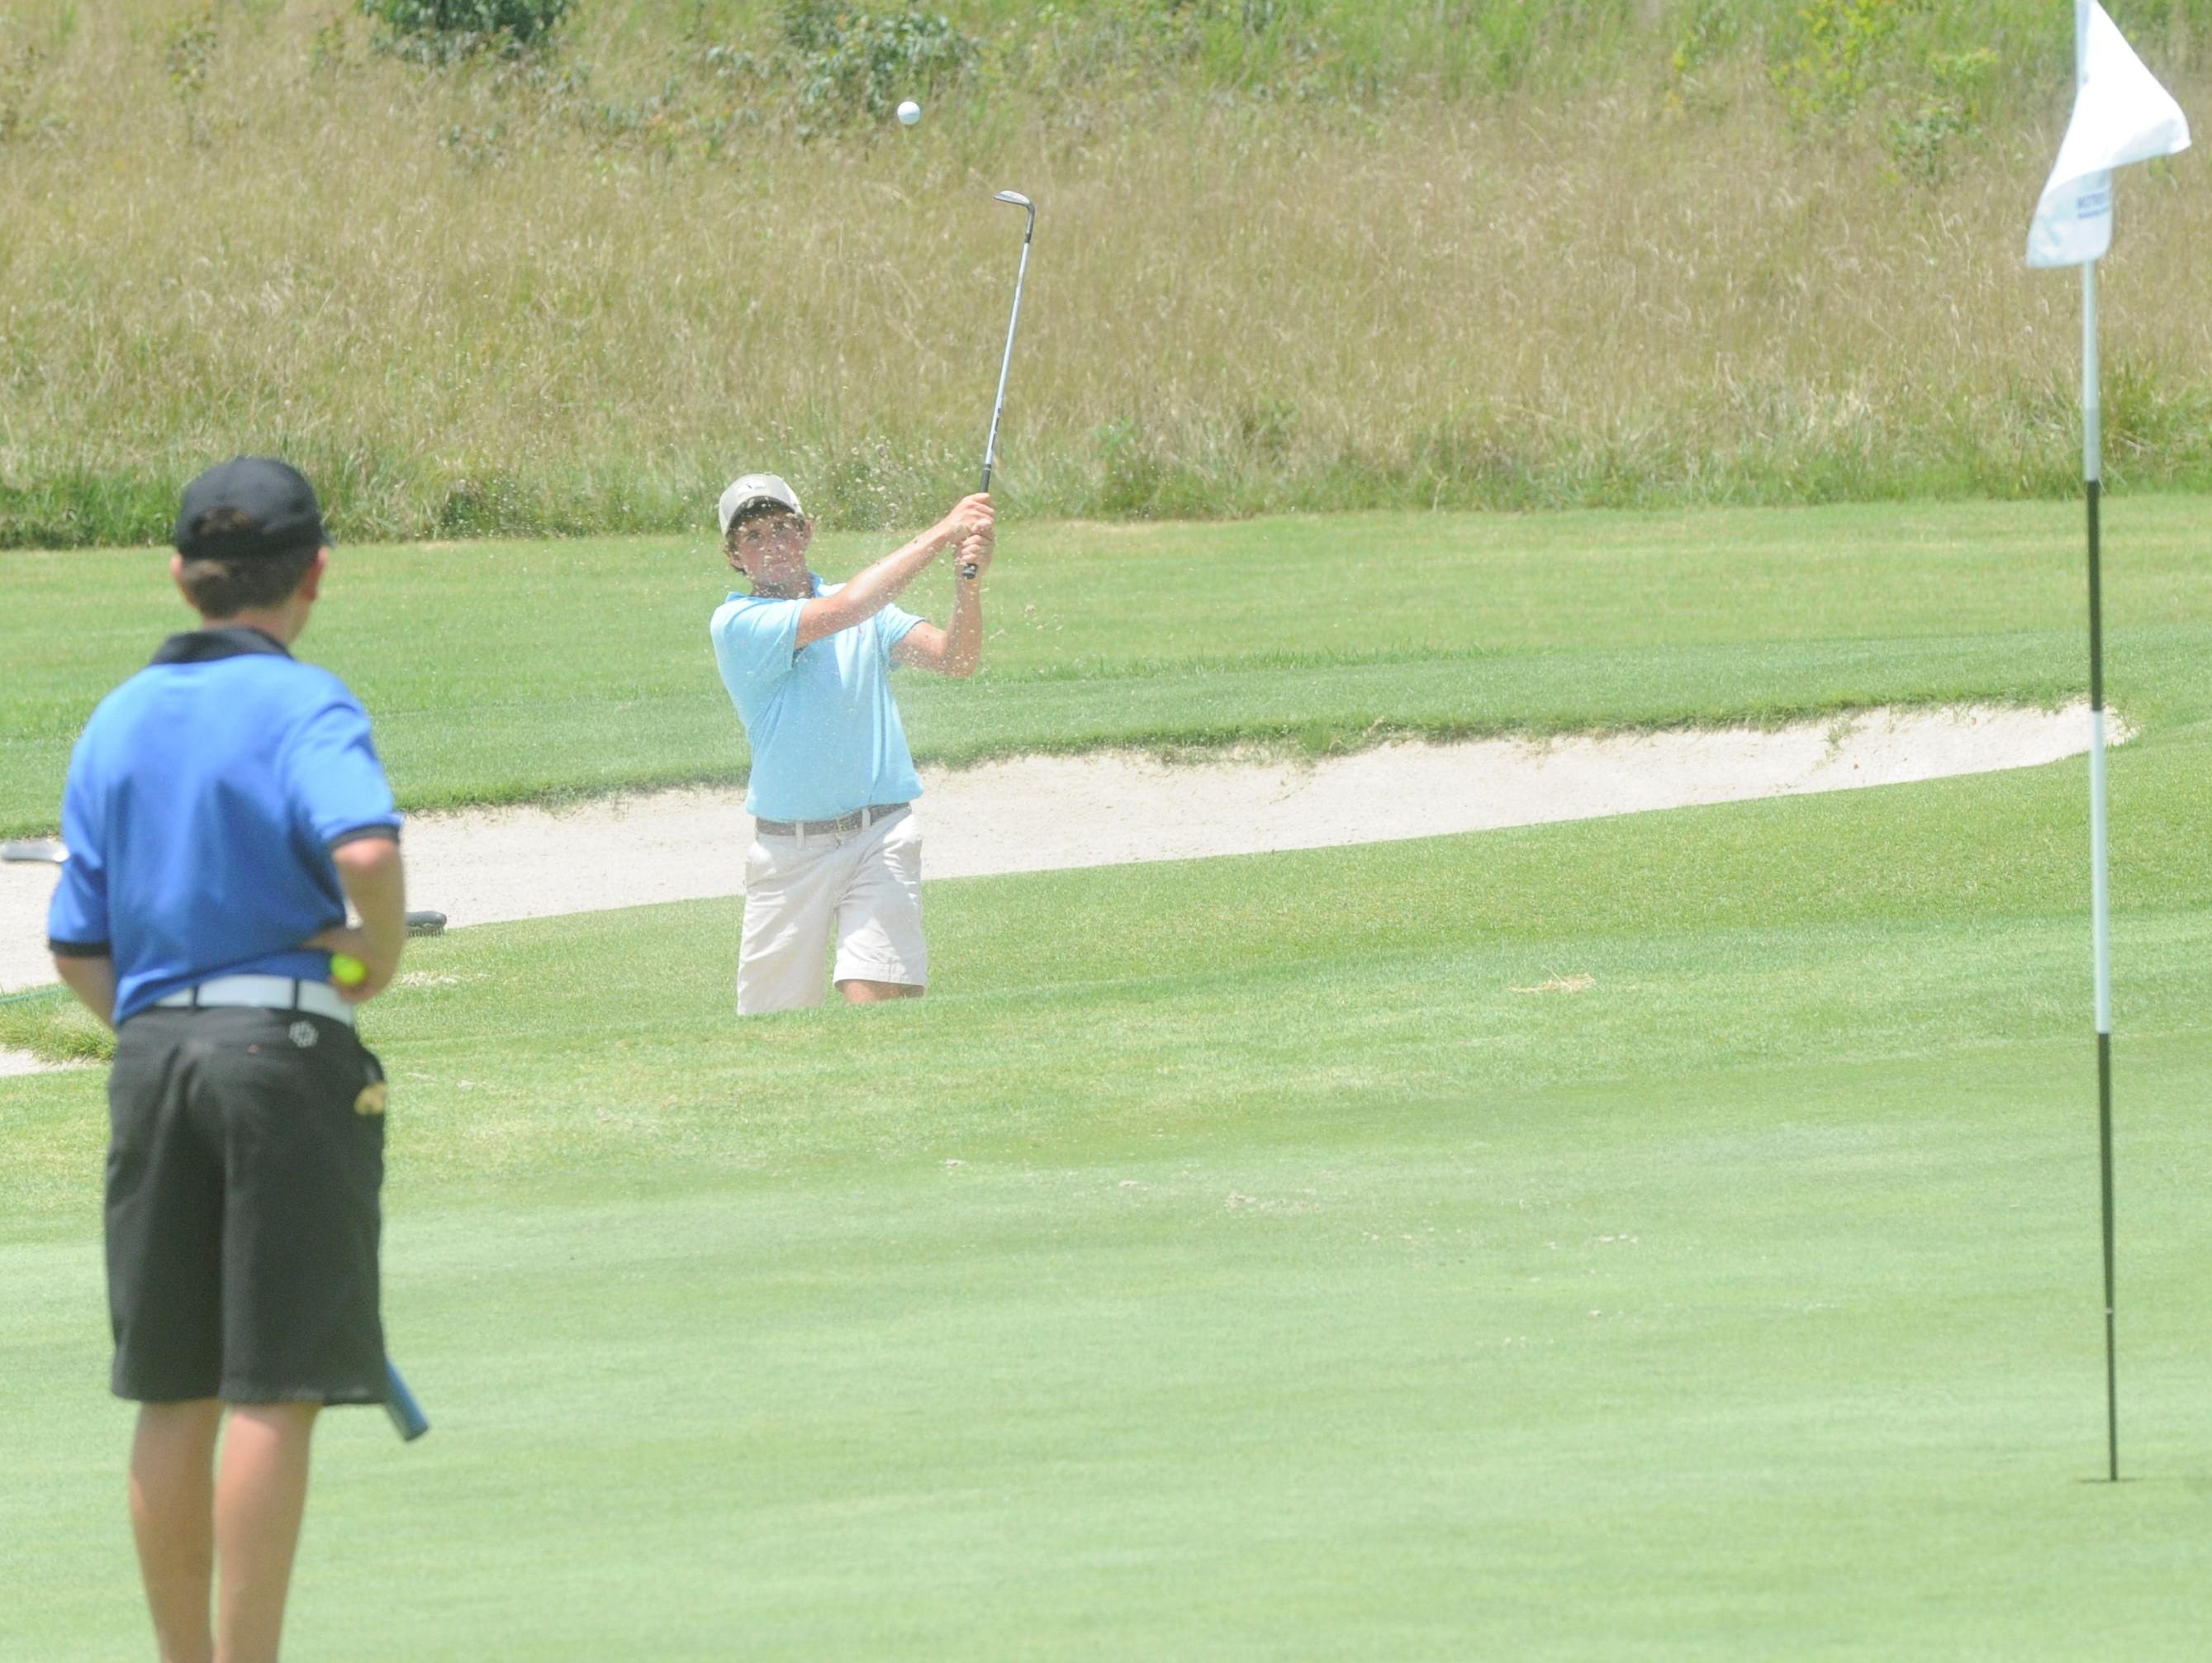 Mountain Home's Ben Hagaman blasts a shot out of the bunker on the fifth hole at Big Creek Golf & Country Club during the Chuck Morton Memorial Junior Golf Tournament on Friday.